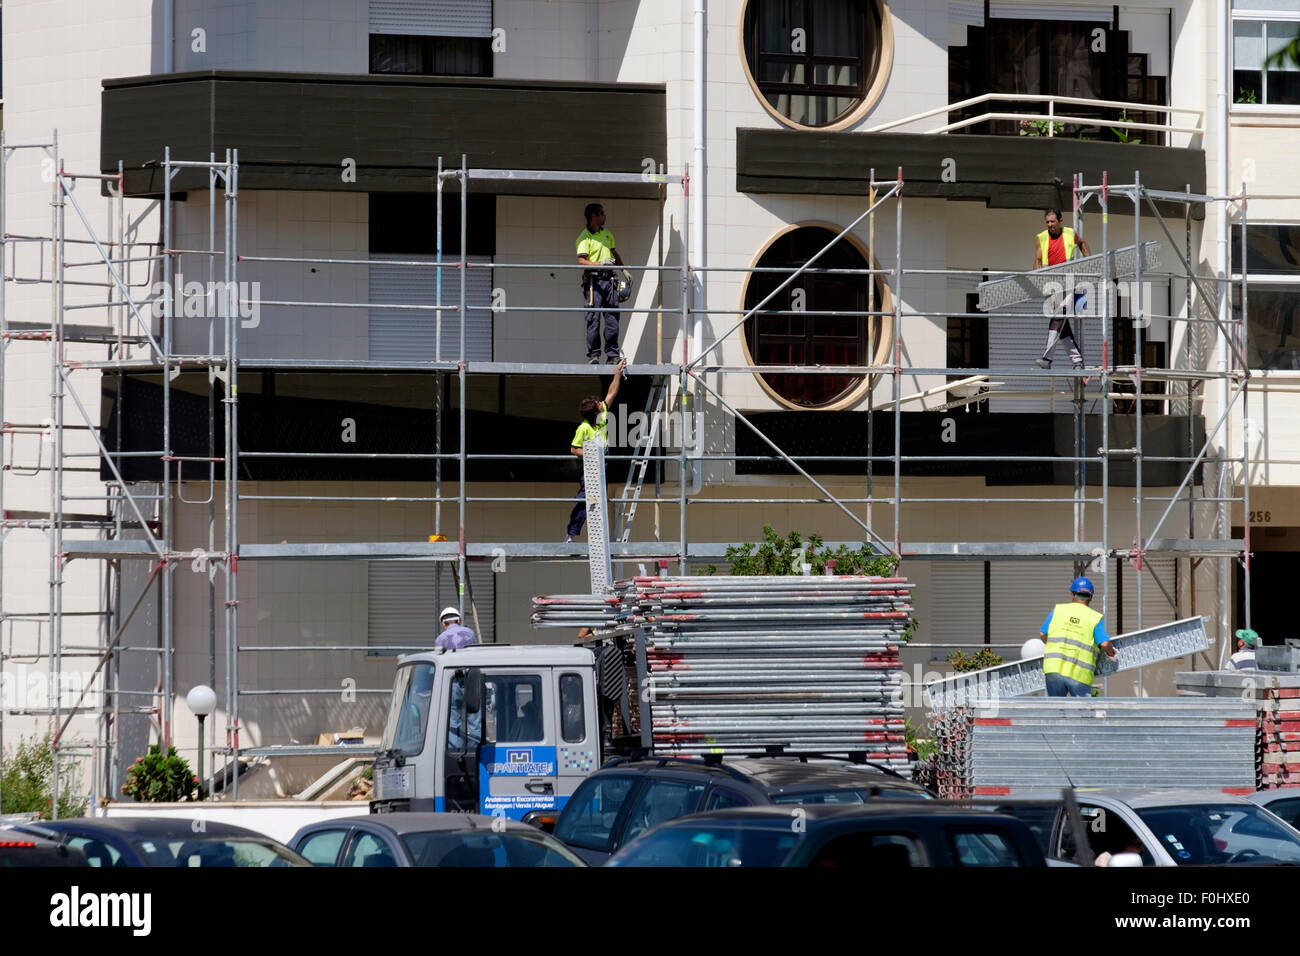 Construction workers installing scaffolding on a building - Stock Image